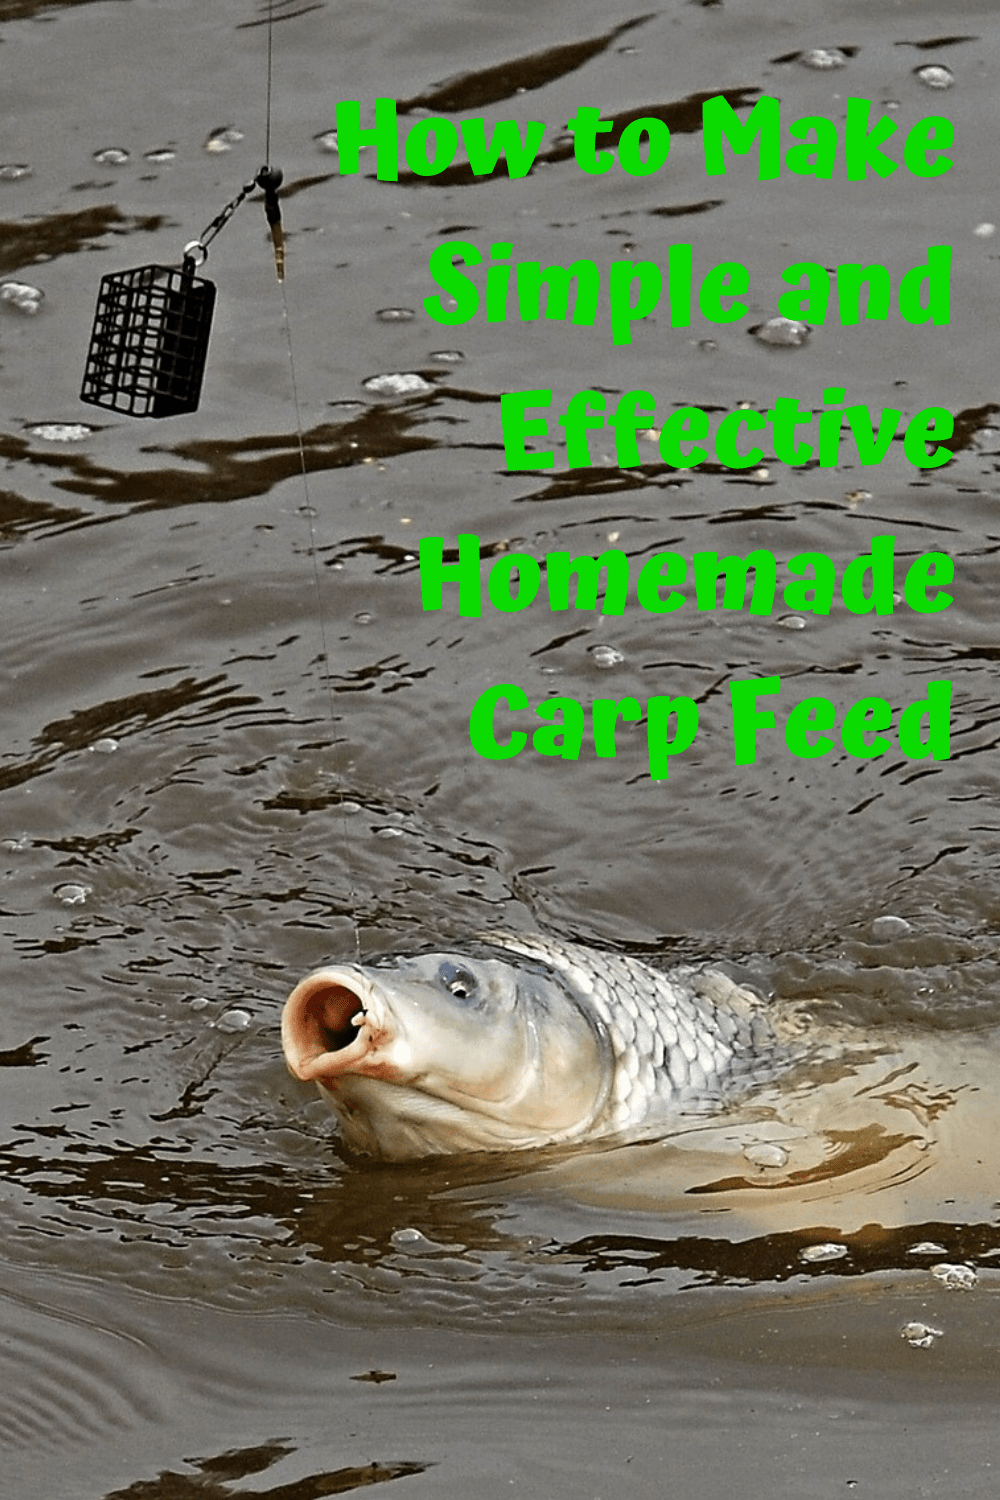 If you want to CATCH BIG CARP, EFFECTIVE CARP FEED IS NECESSARRY. Unfortunately, carp feed is EXTREMELY EXPENSIVE. That's why MAKING IT ON YOUR OWN is THE BEST WAY to CATCH BIG CARP, but still have SOME MONEY LEFT. Therefore, since the CARP FEED RECIPE I USE WORKS VERY WELL, I'm gonna show you HOW TO MAKE SIMPLE AND EFFECTIVE HOMEMADE CARP FEED in this article!